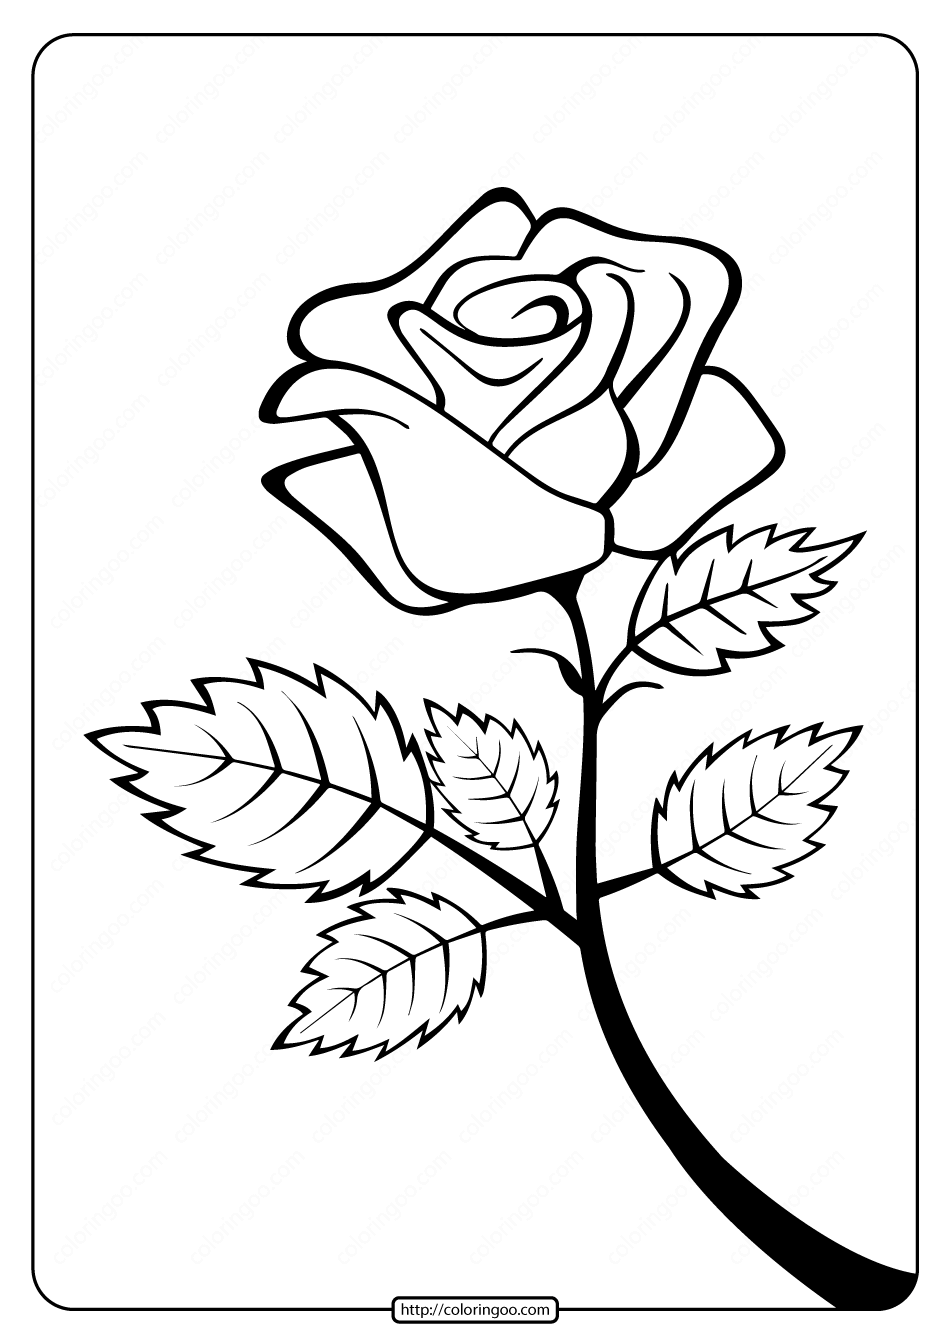 rose coloring pages to print rose flower coloring page 005 in 2020 rose coloring pages to rose print coloring